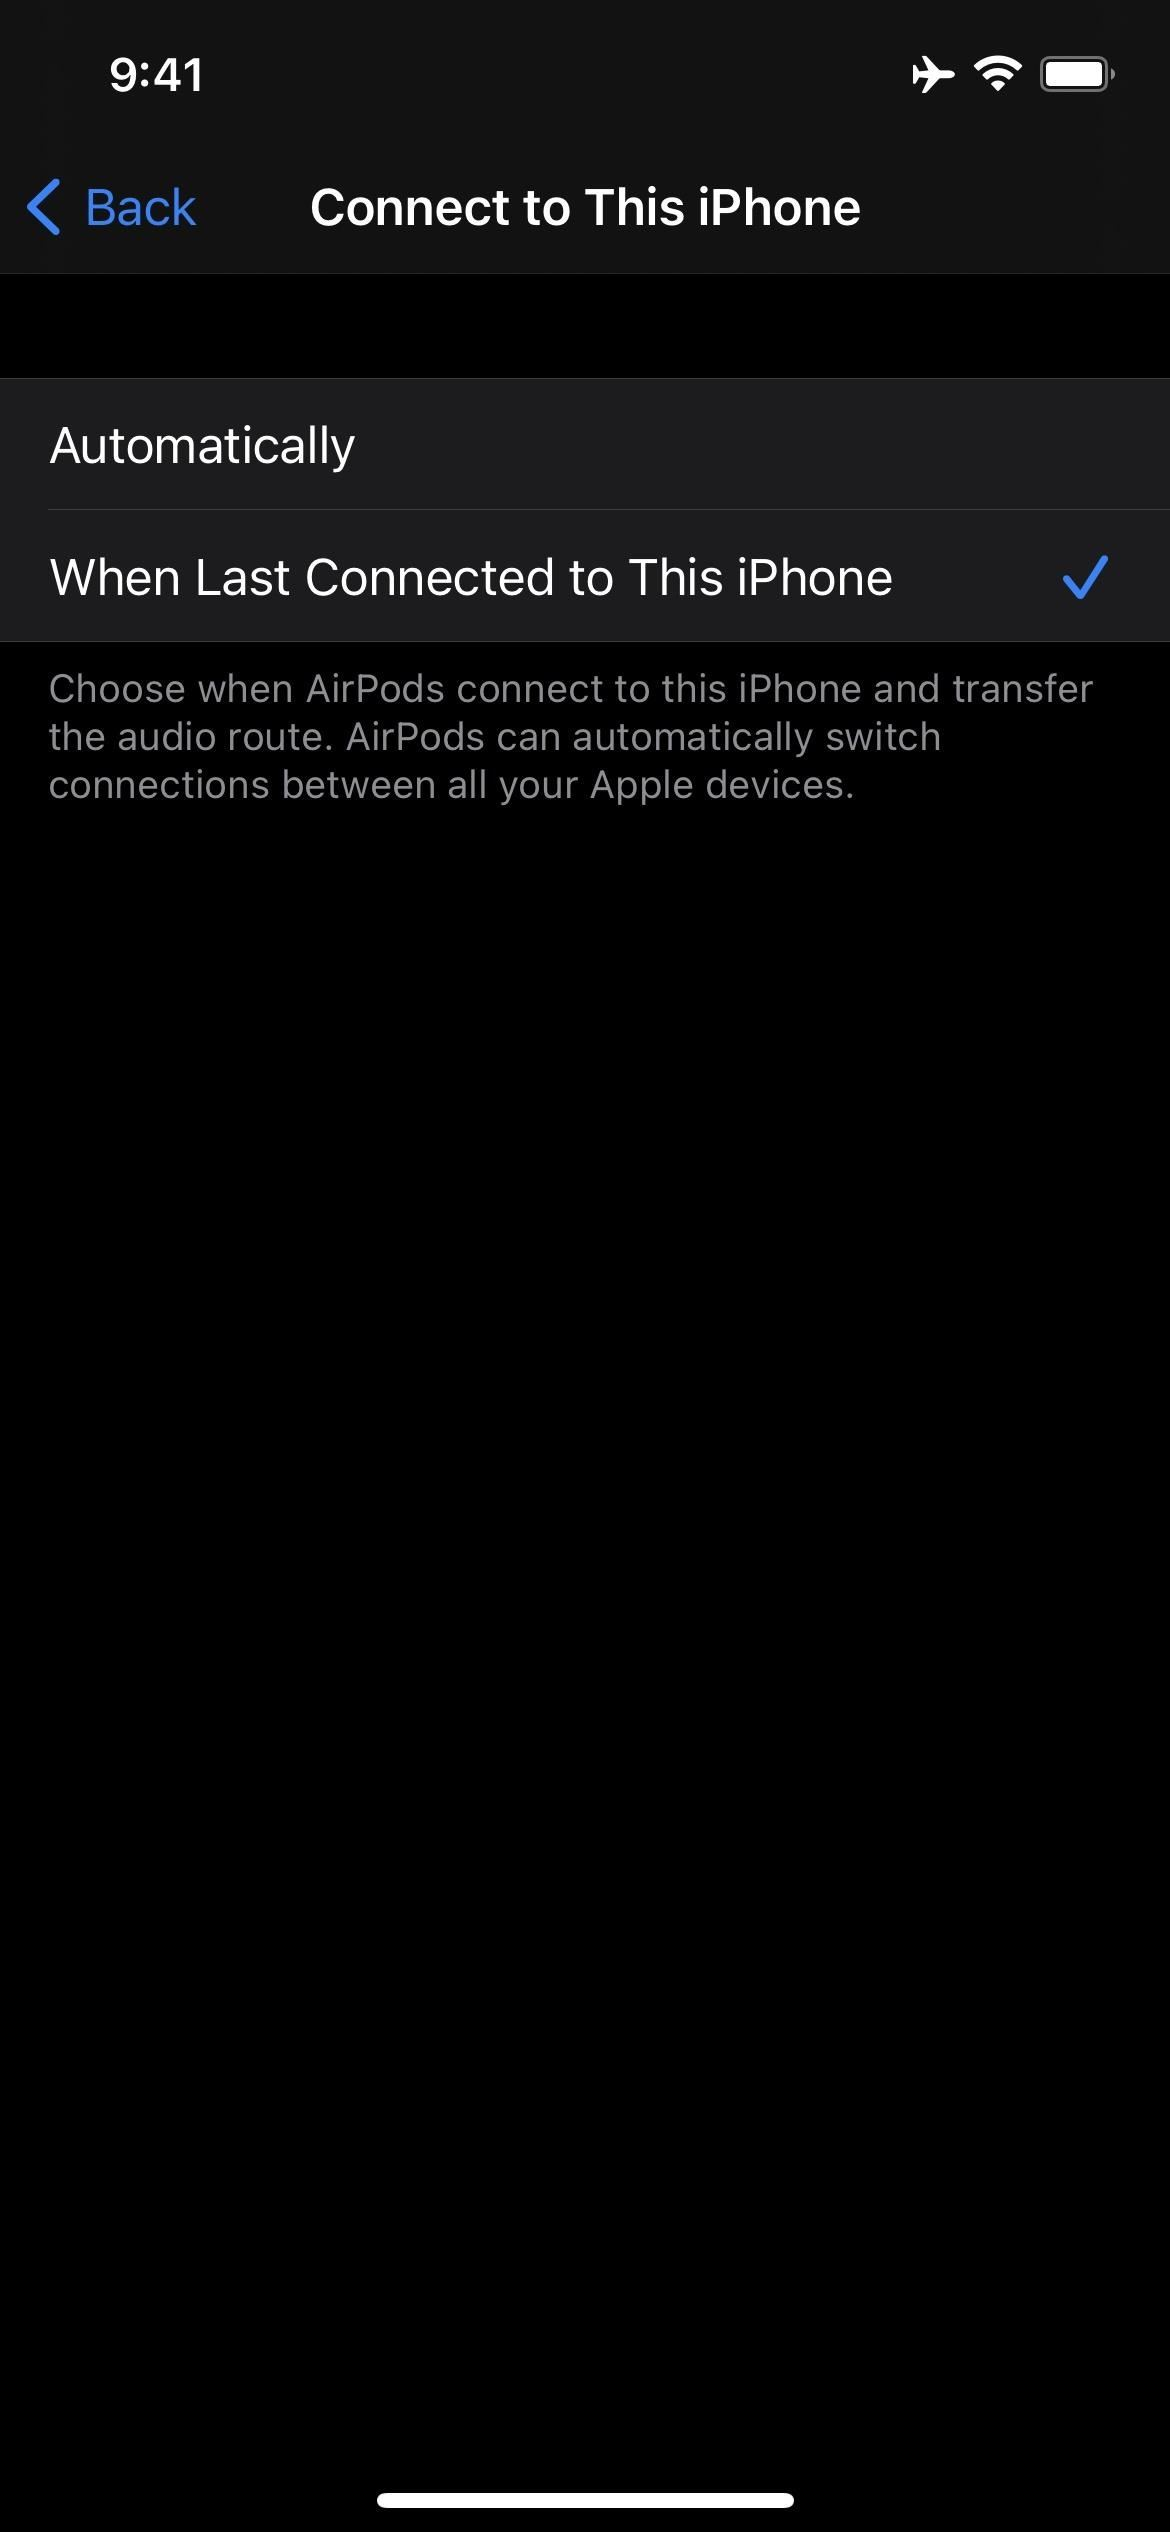 Stop AirPods from Annoyingly Auto-Switching Between iPhone, iPad & Mac So They Stick to One Device